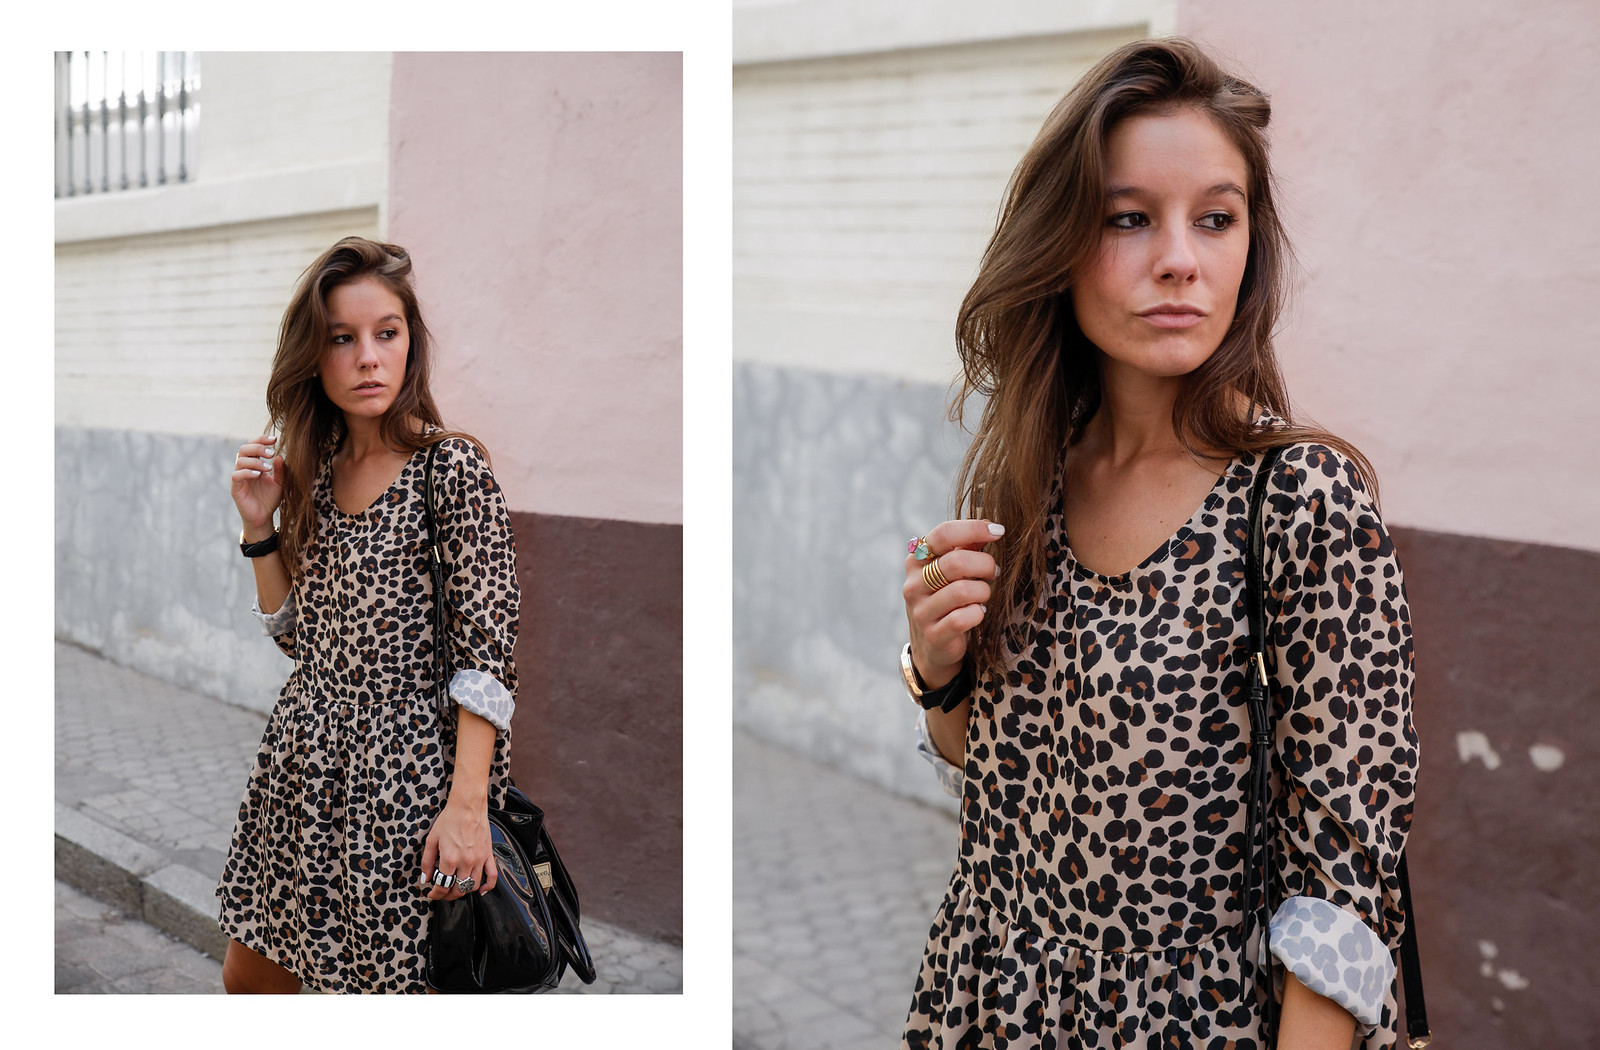 laura santolaria influencer spain barcelona theguestgirl the guest girl leopard